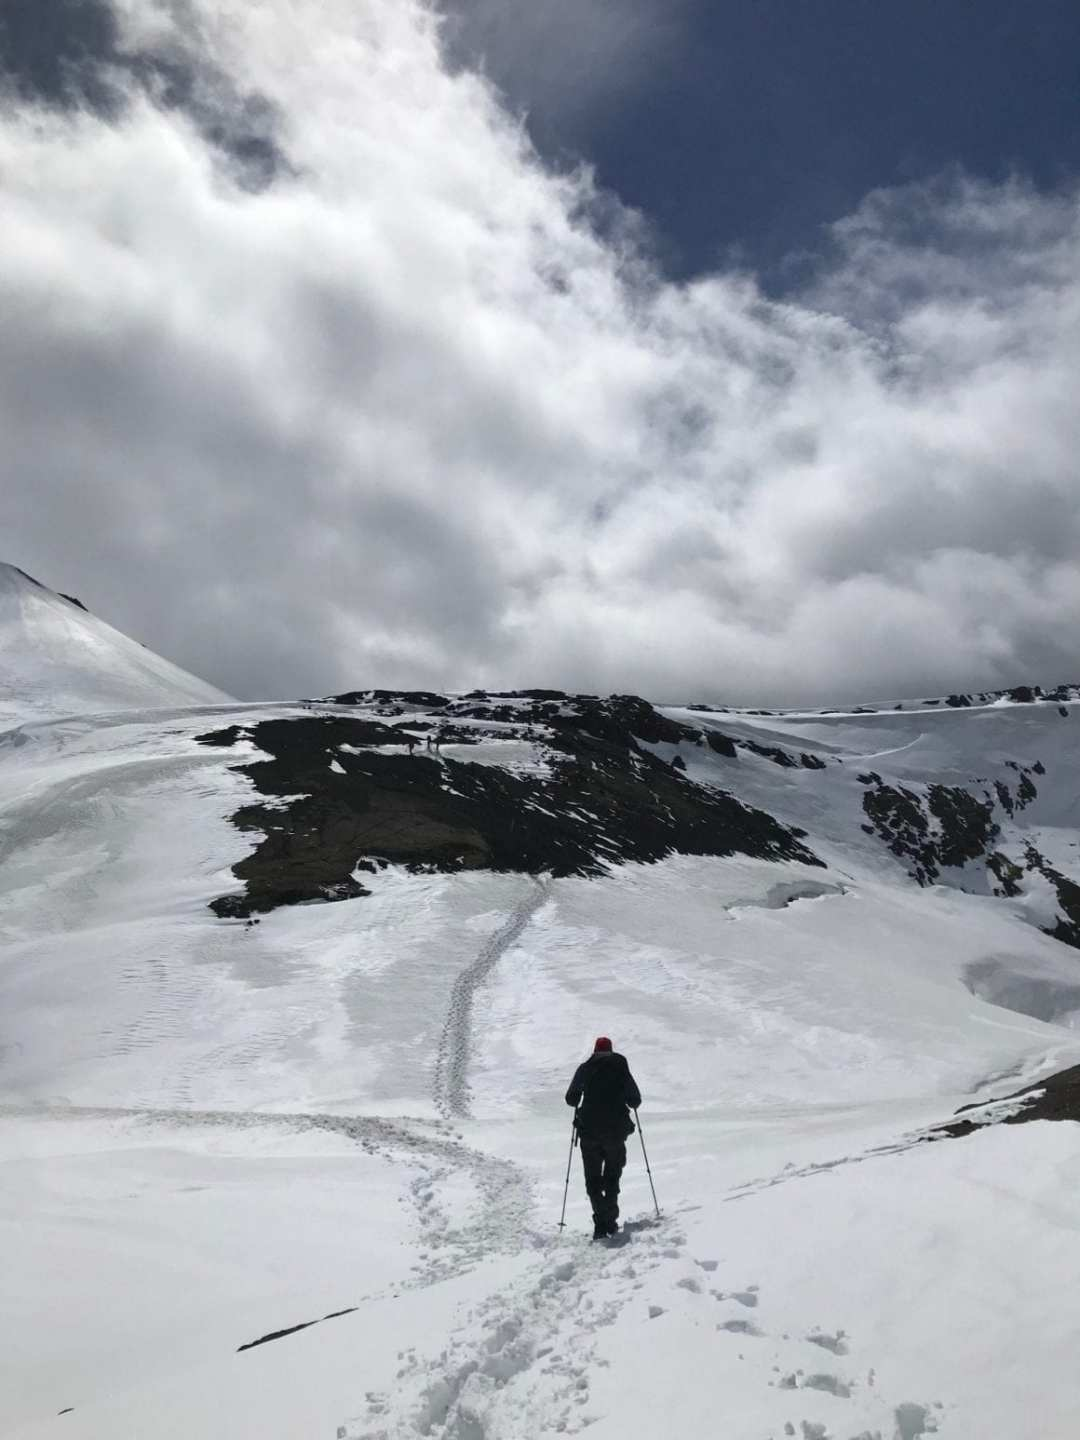 Hiking the Laugavegur trail in the snow